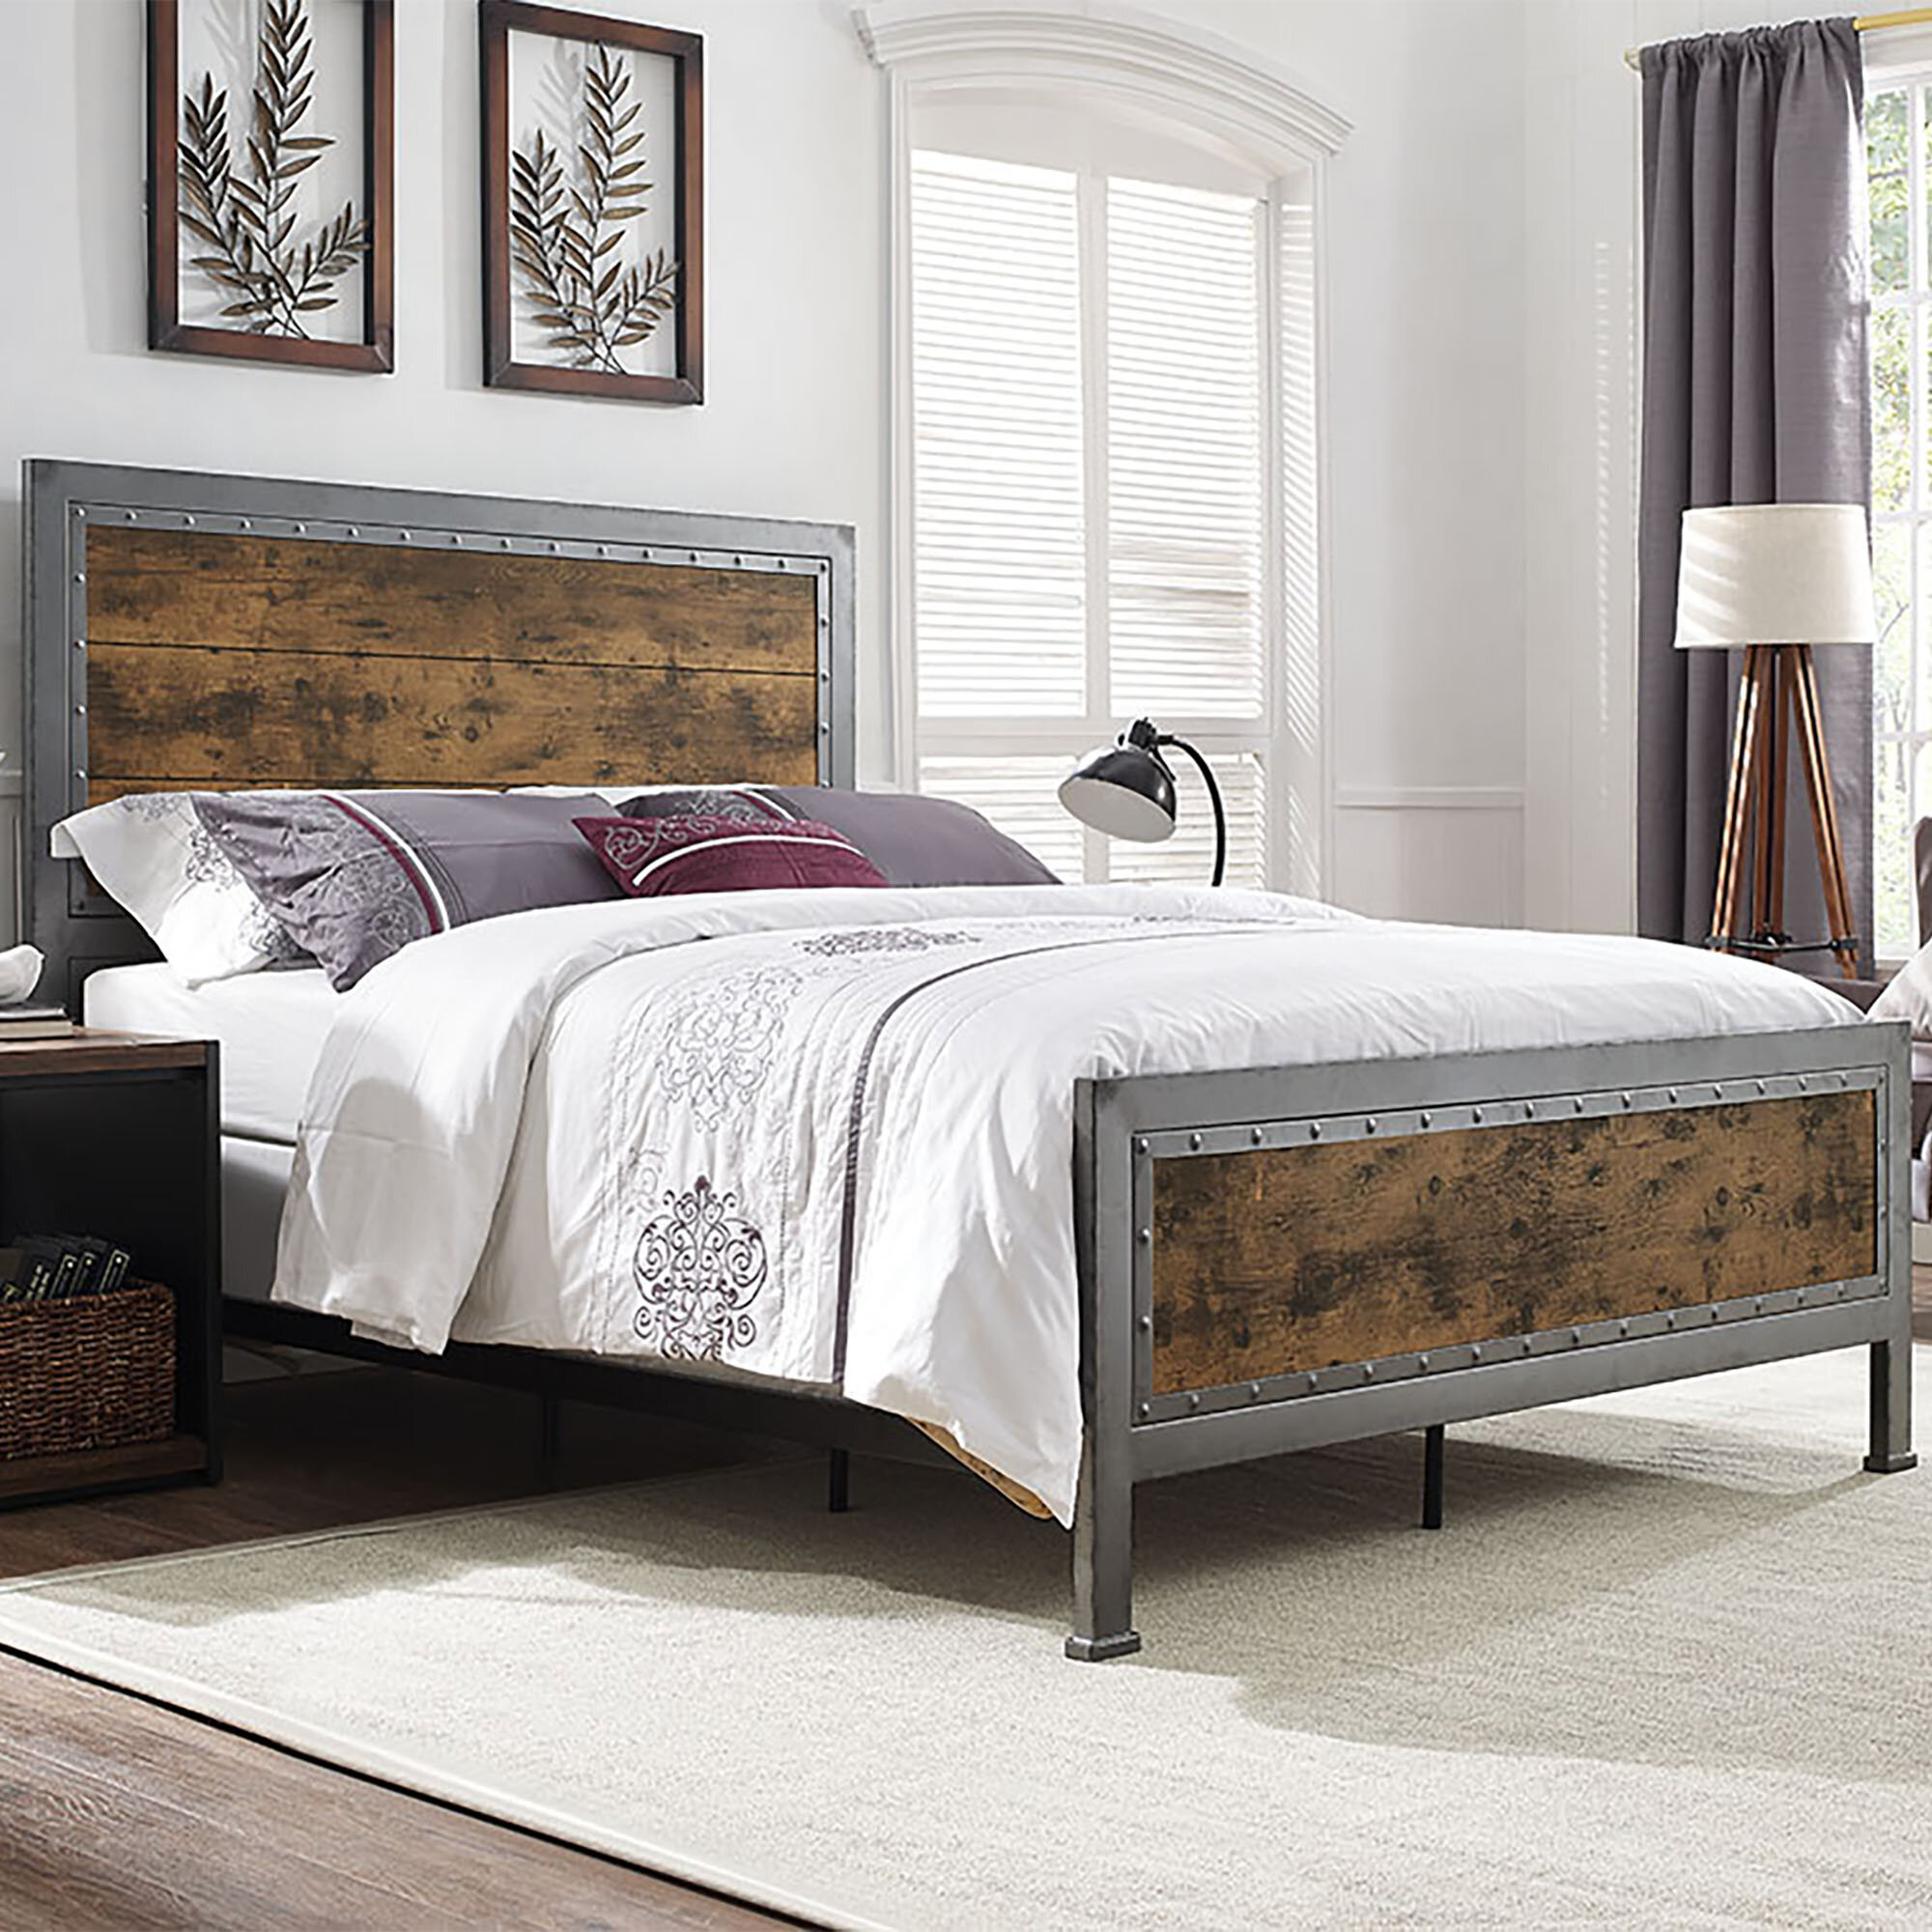 number ftbd products market french queen sleigh item low bed and vaughan bassett headboard w